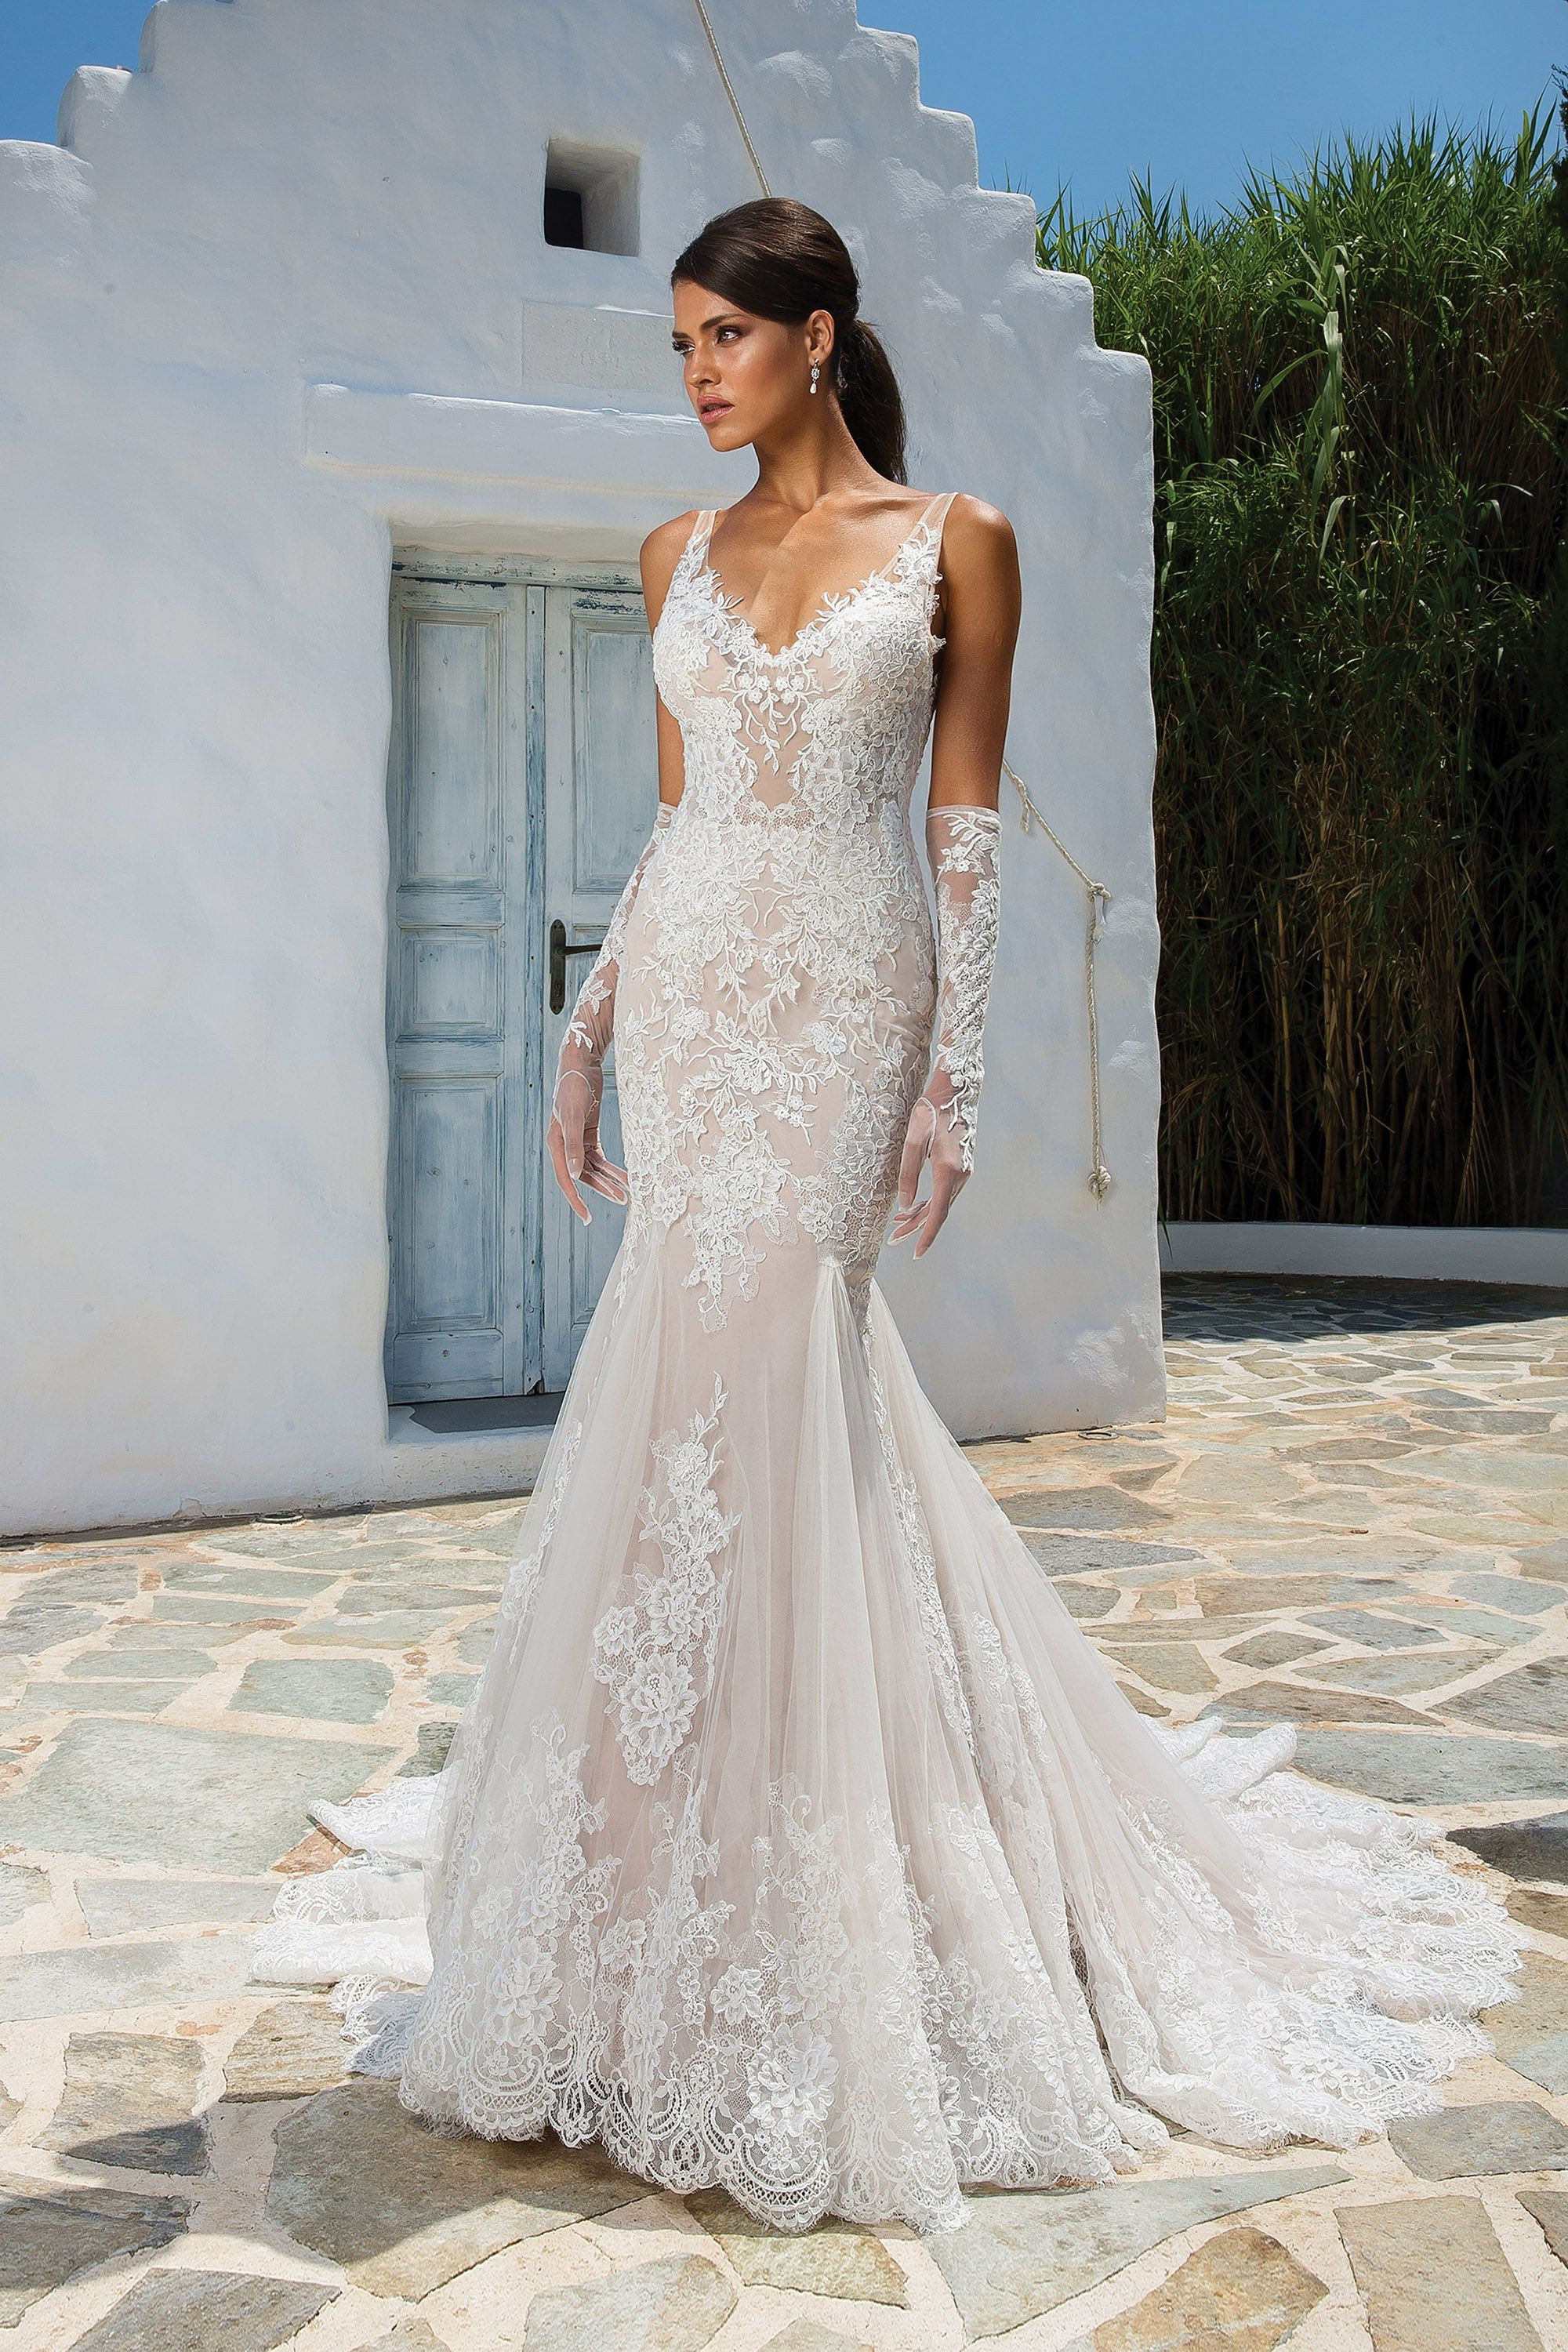 Lace fit and flare wedding dress with sleeves  Justin Alexander  Allover Lace Fit and Flare Gown with Illusion